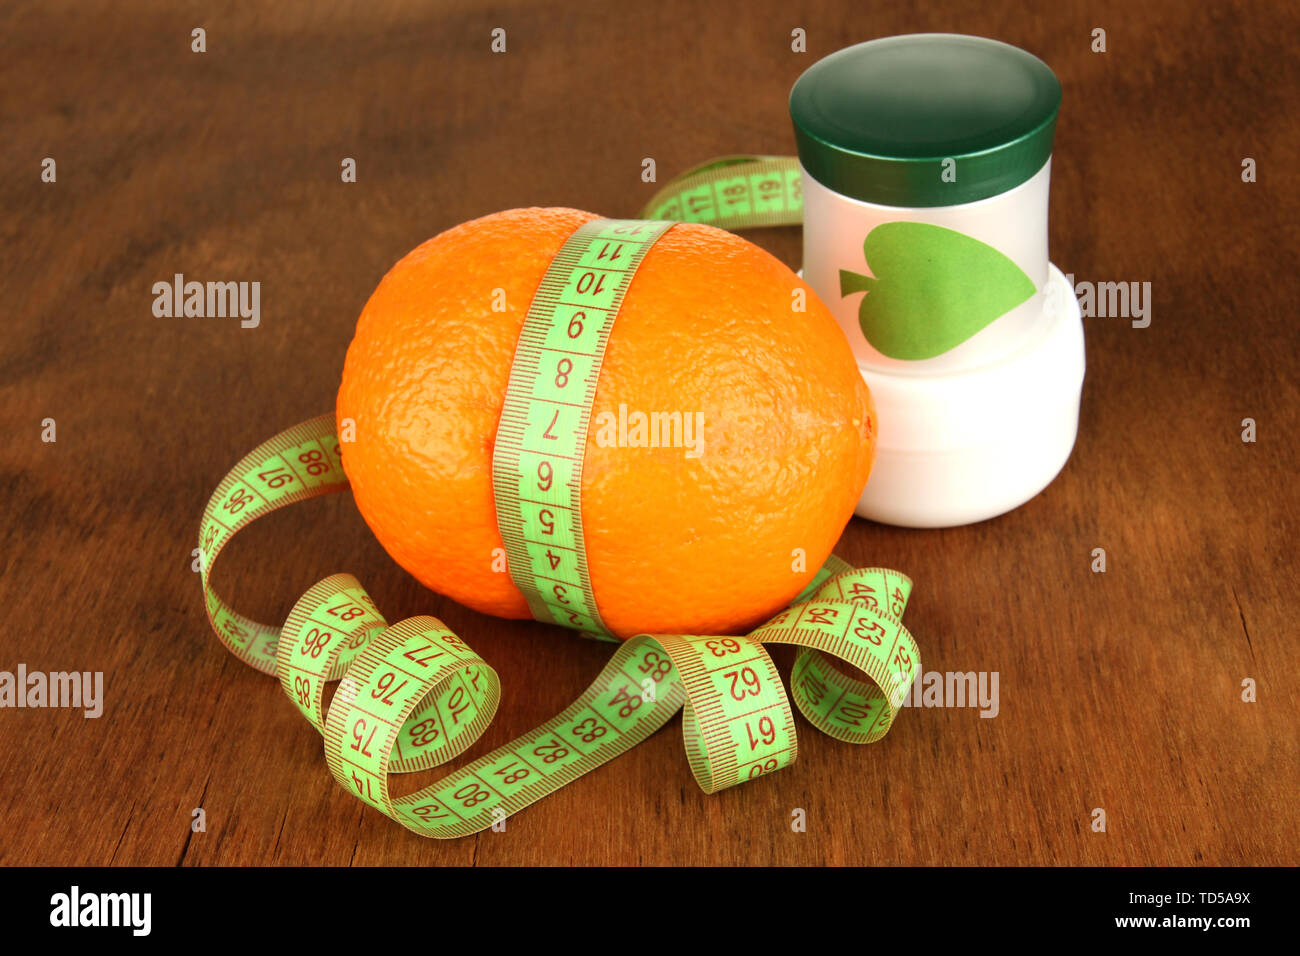 Orange with measuring tape and body cream, on wooden background - Stock Image